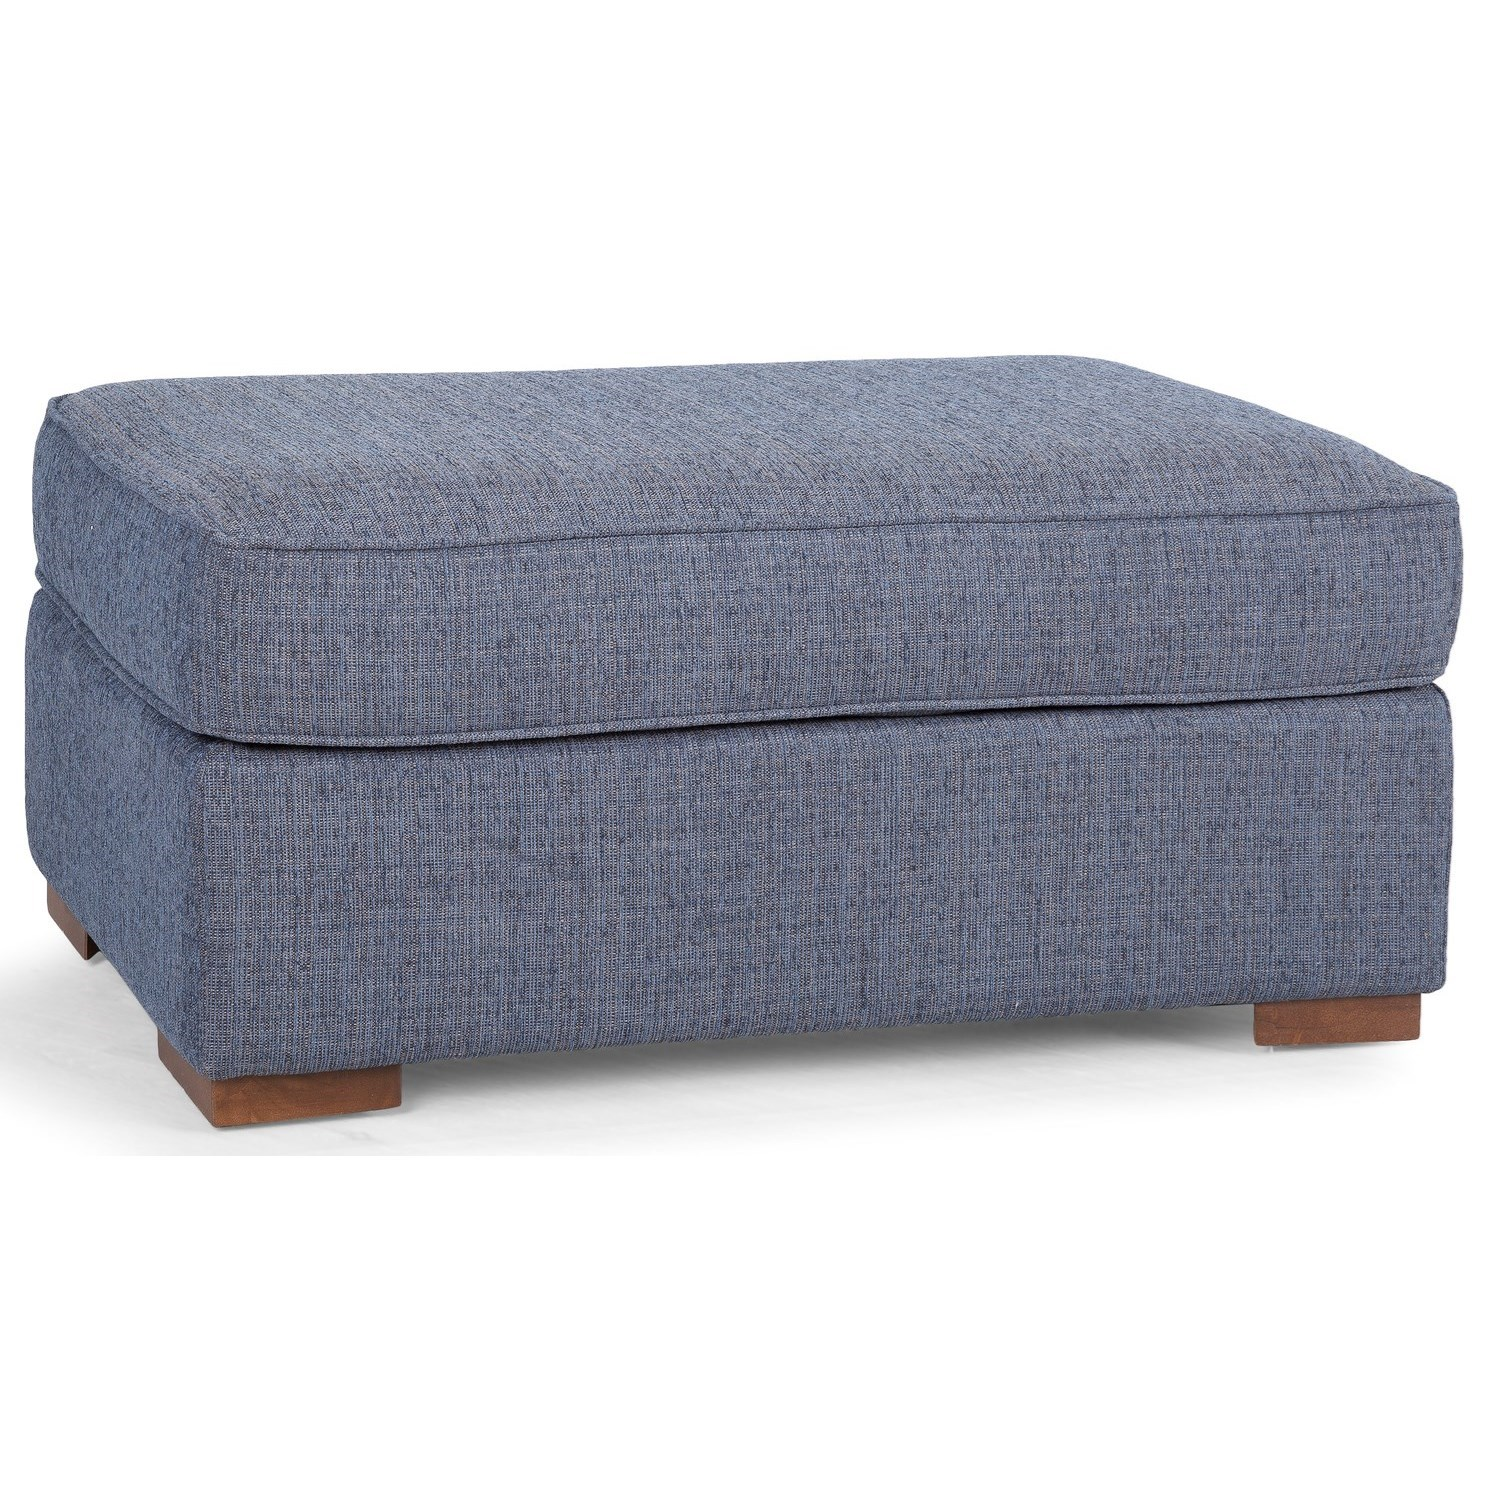 2591 Ottoman by Decor-Rest at Stoney Creek Furniture